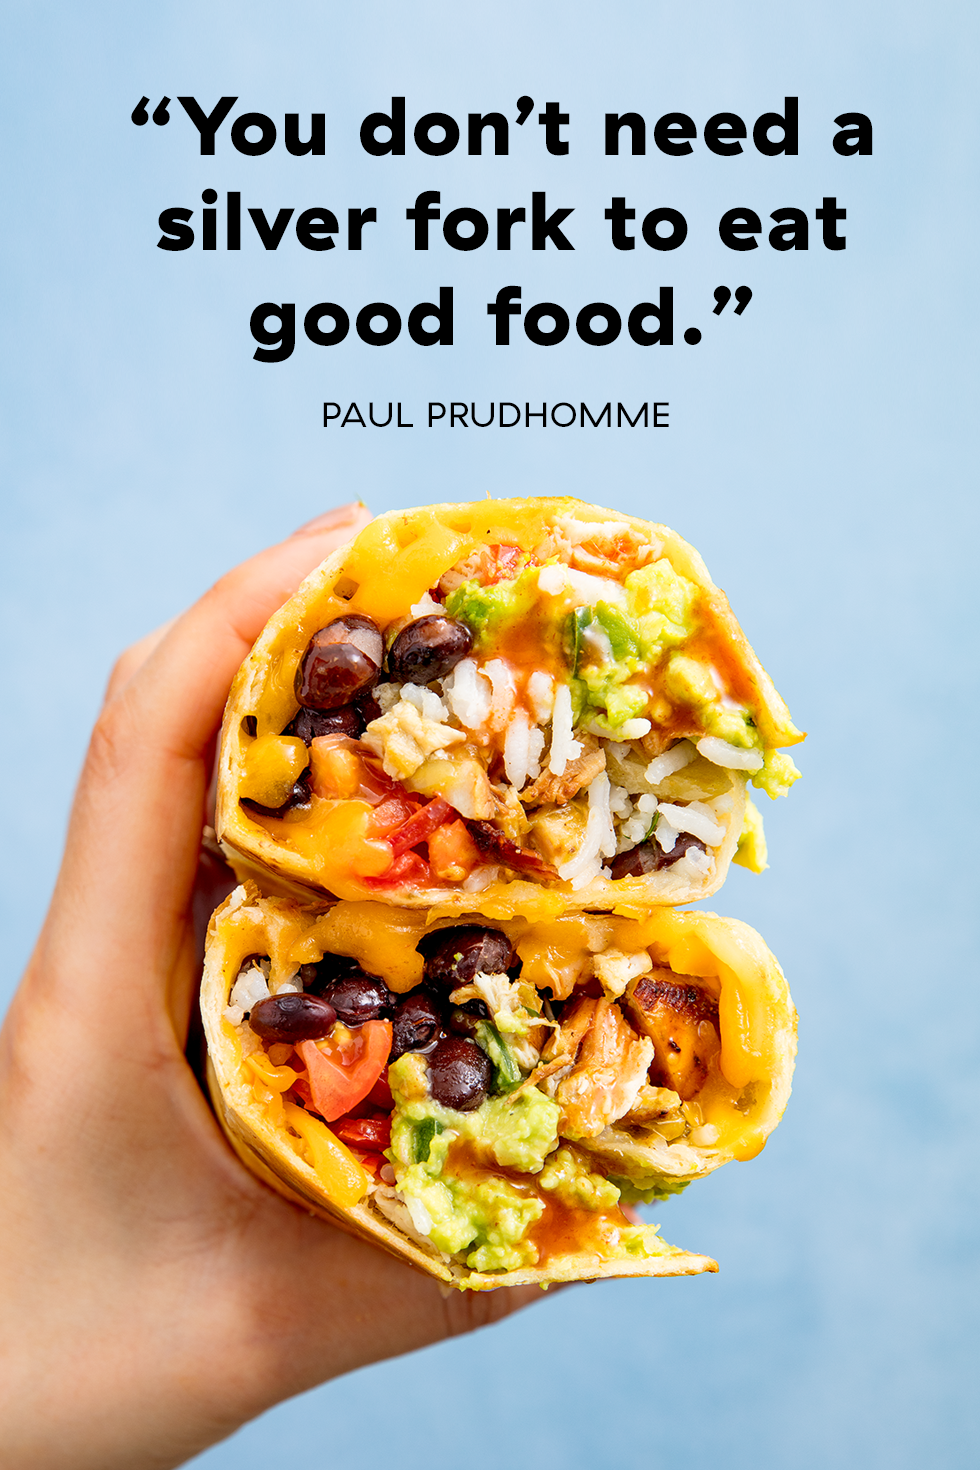 12 Best Food Quotes from Famous Chefs - Great Sayings About Eating